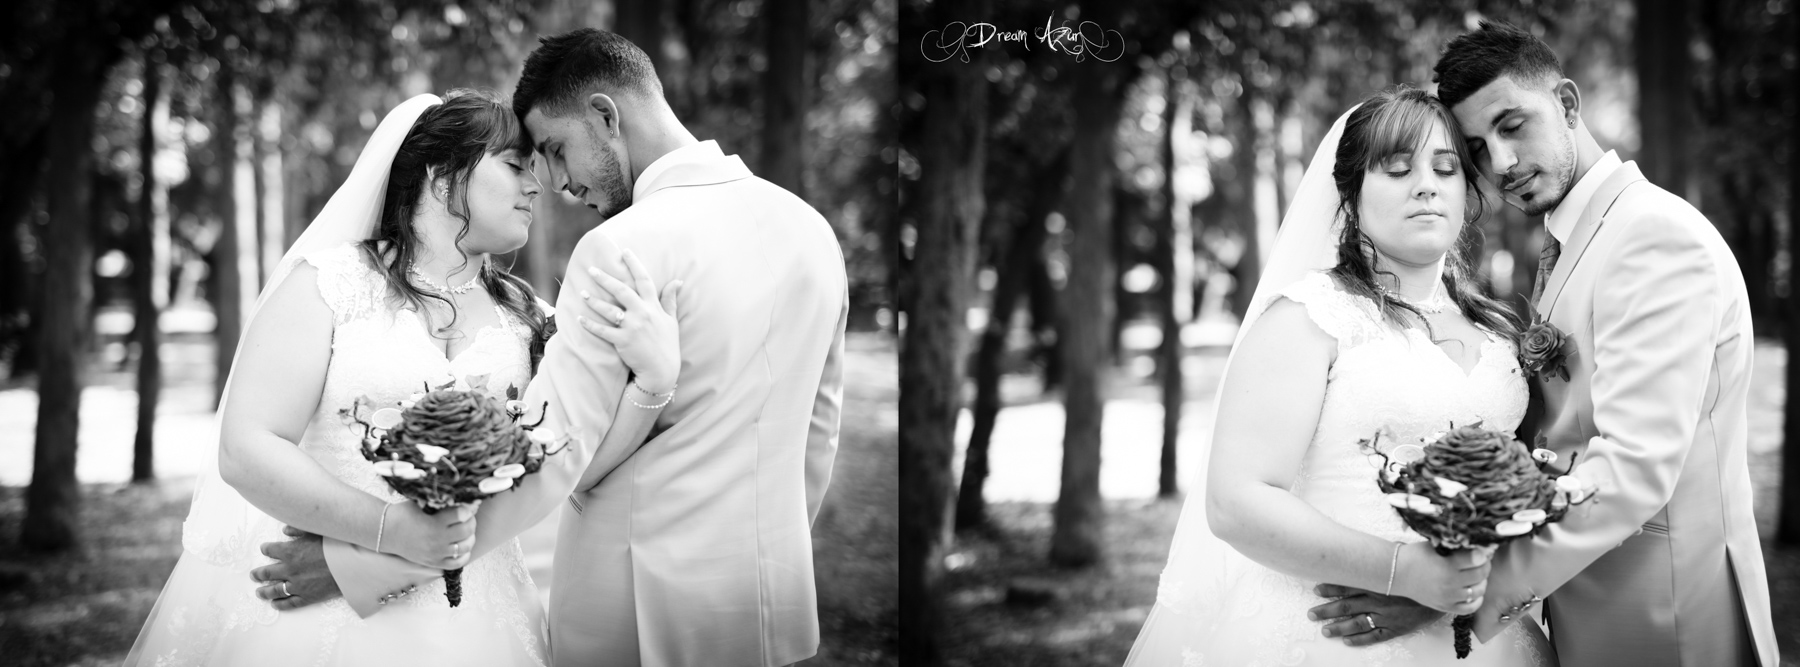 190824COMPO-Mariage-Cindy-et-Anthony-61